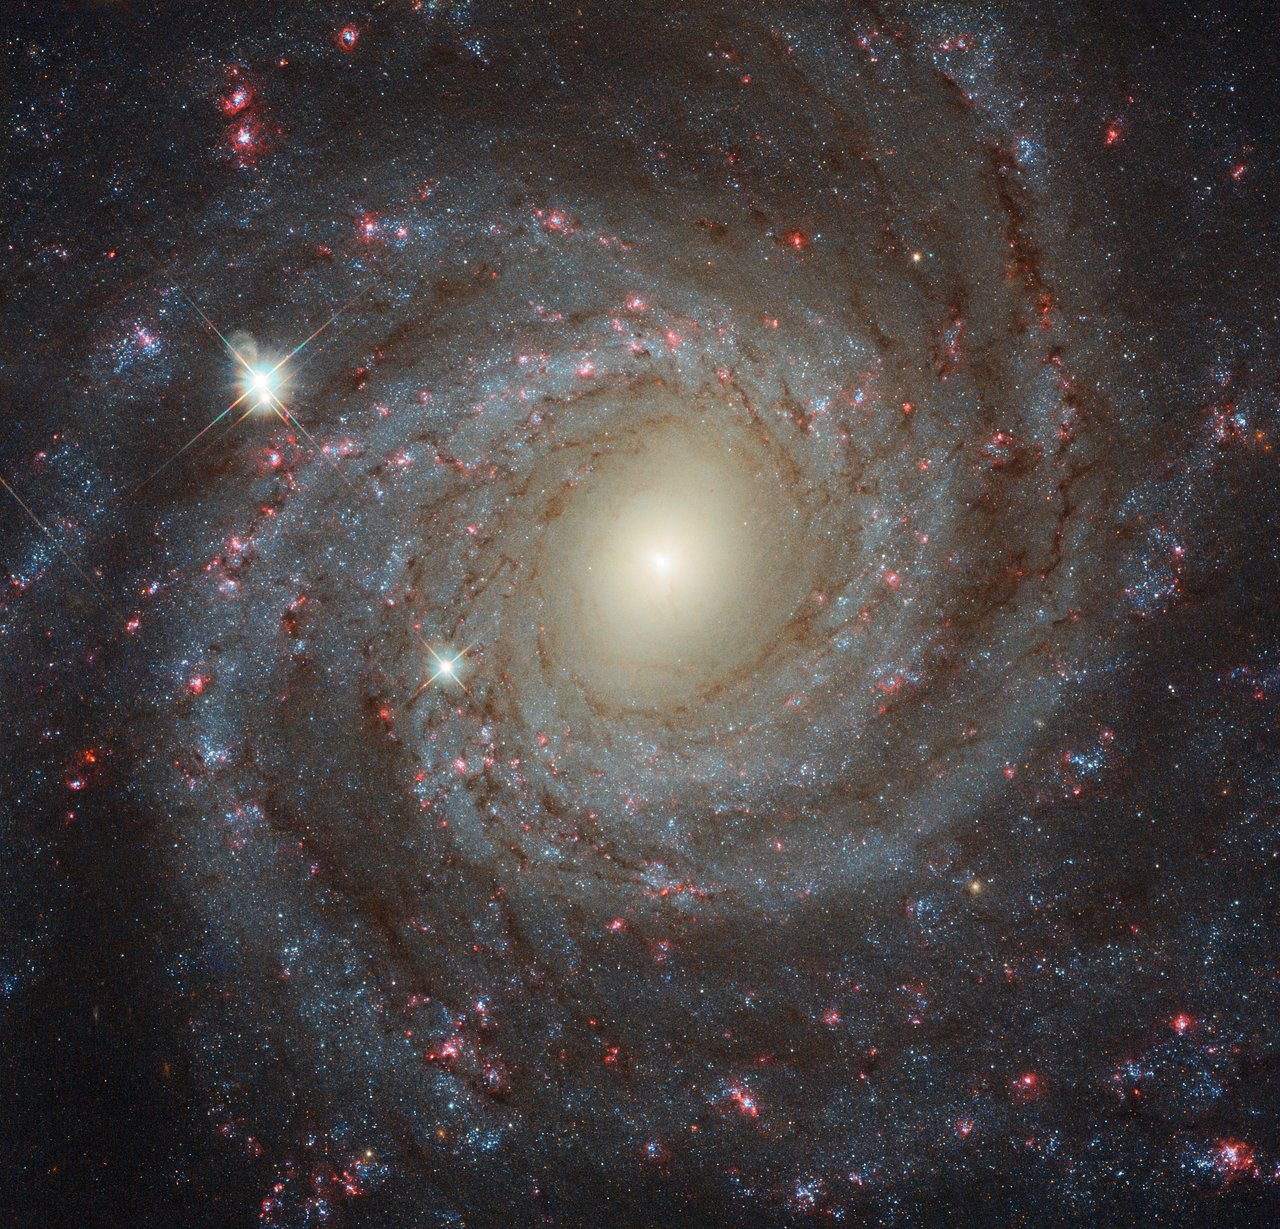 This image of the spiral galaxy NGC 3344, located about 20 million light-years from Earth, is a composite of images taken through seven different filters. They cover wavelengths from the ultraviolet to the optical and the near-infrared. Together they create a detailed picture of the galaxy and allow astronomers to study many different aspects of it. - Image Credit: ESA/Hubble, NASA